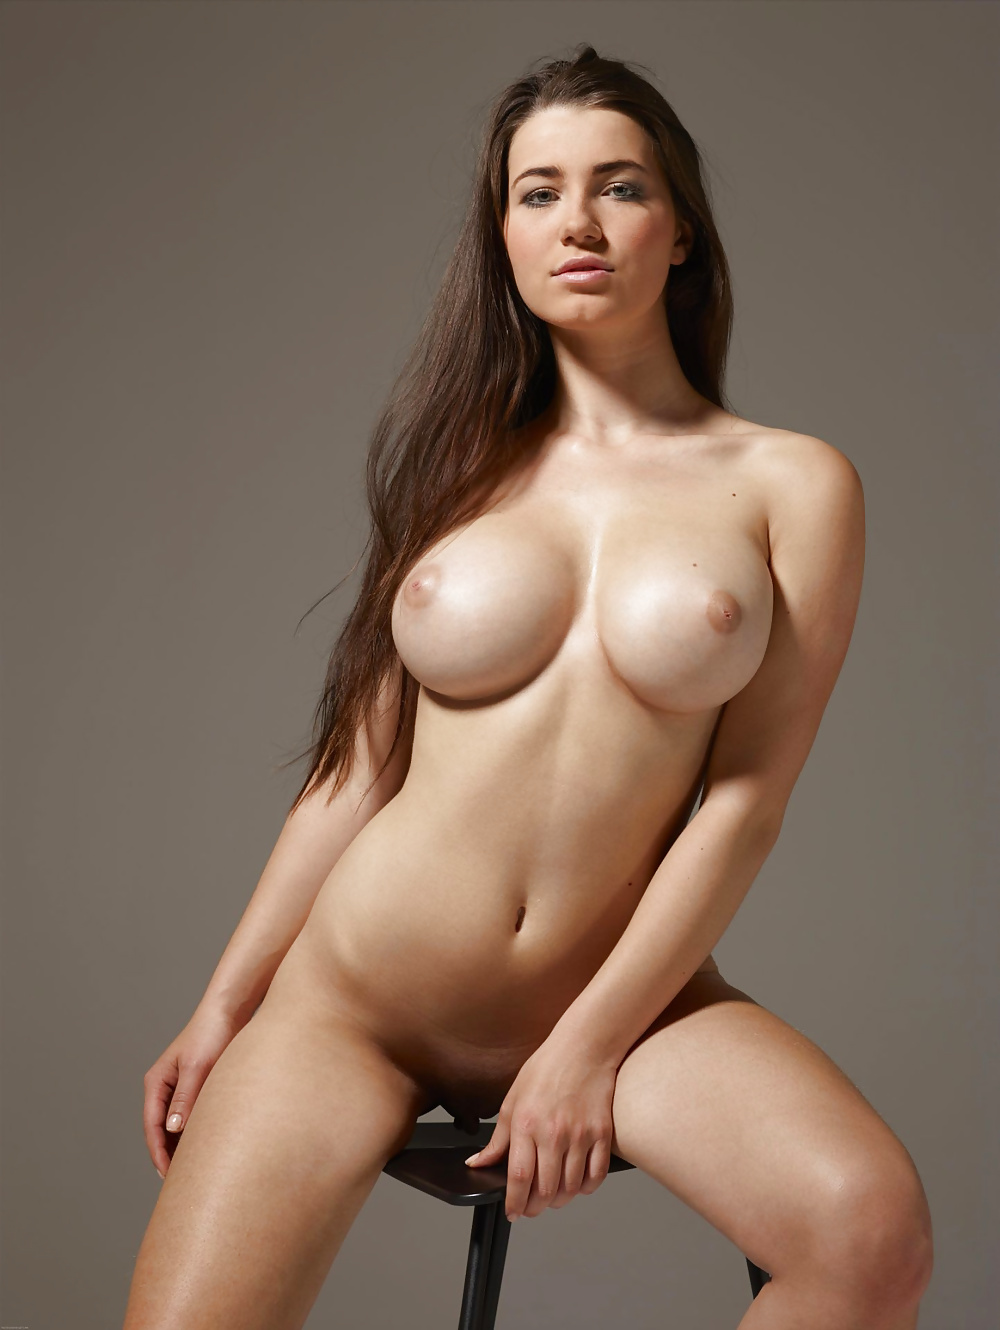 Ideal Just Beautiful Nude Women Png